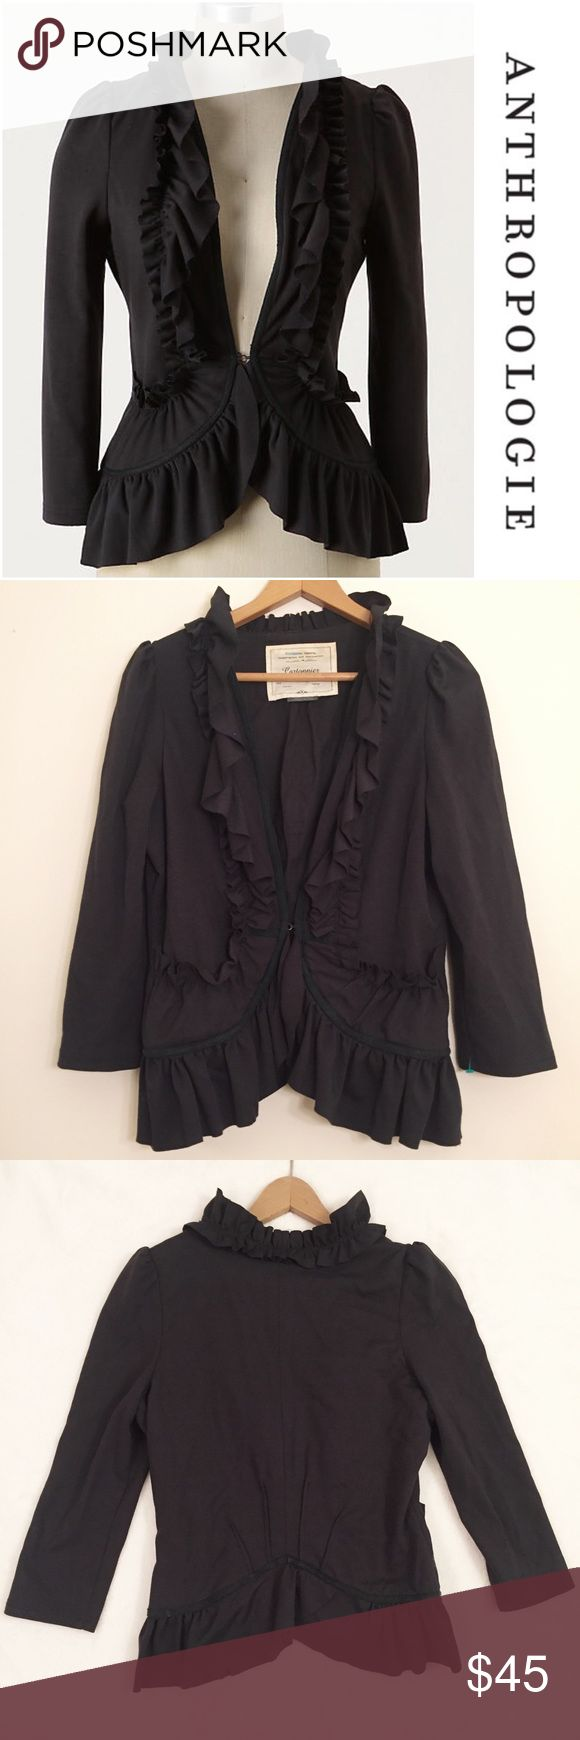 JUST IN ANTHROPOLGIE Cartonnier Redux Jacket Cartonnier's classic blazer eschews tweed and lapels in favor of stretch-knit and rows of ruffles, hook-and-eye closure, polyester, spandex, cotton lining, in excellent condition. Anthropologie Jackets & Coats Blazers